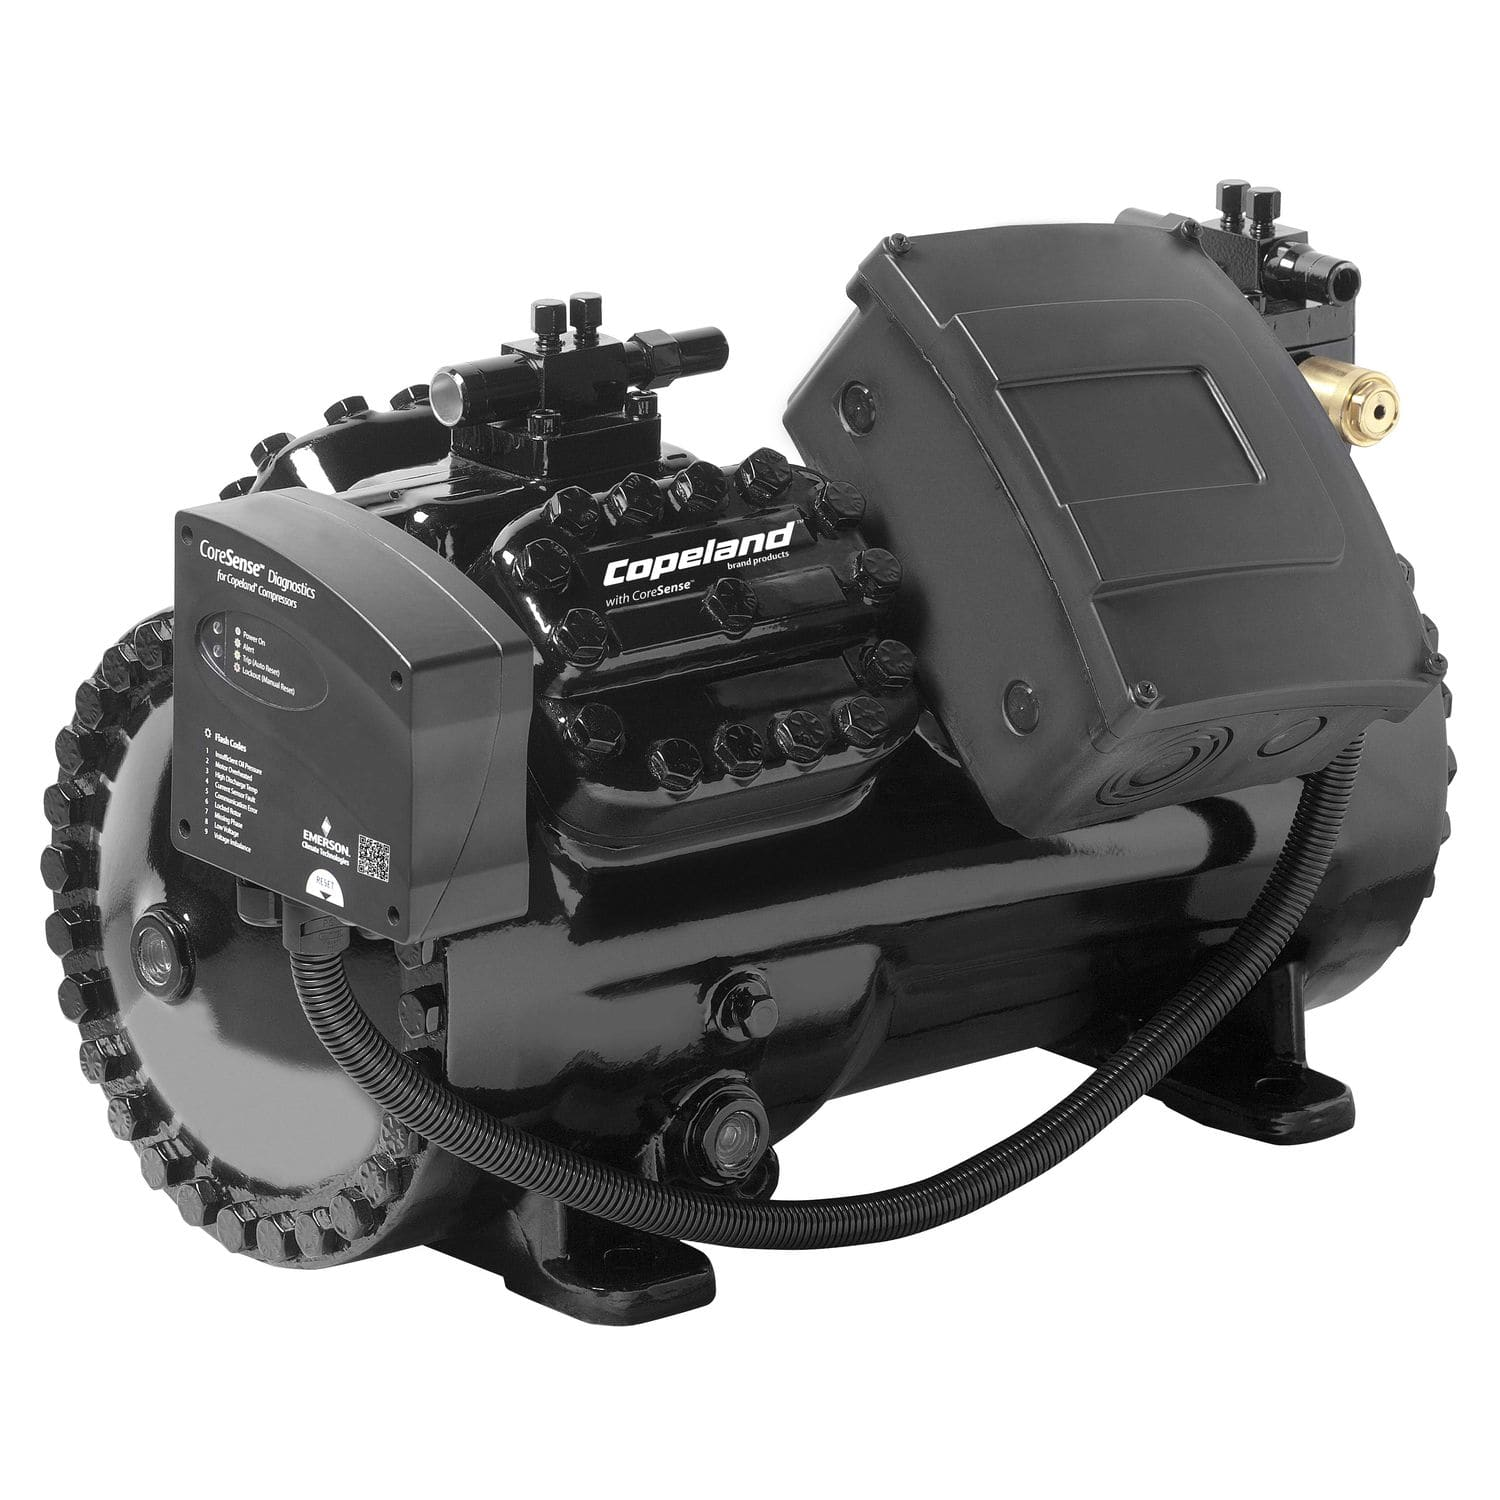 EMERSON refrigeration compressor